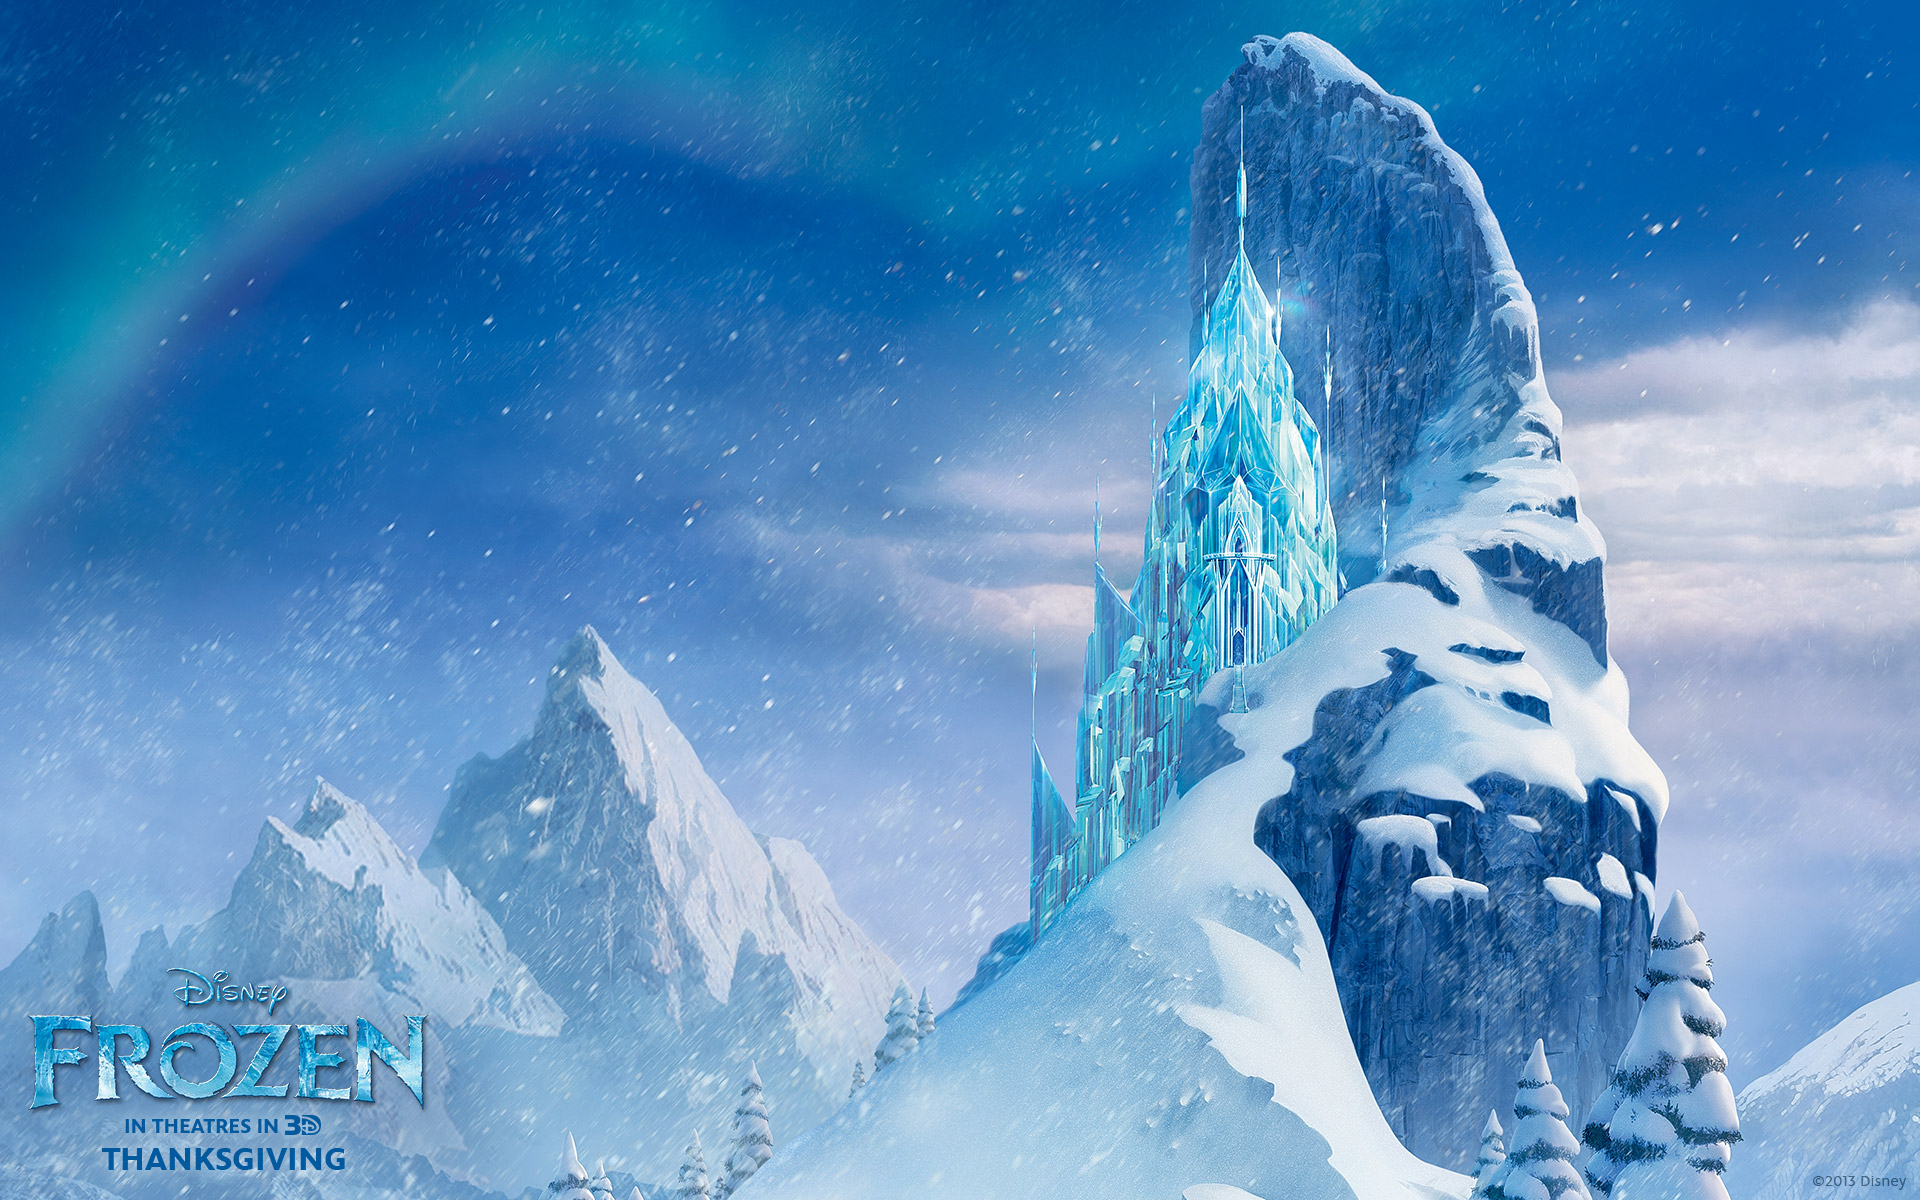 ice castle from disney's frozen desktop wallpaper